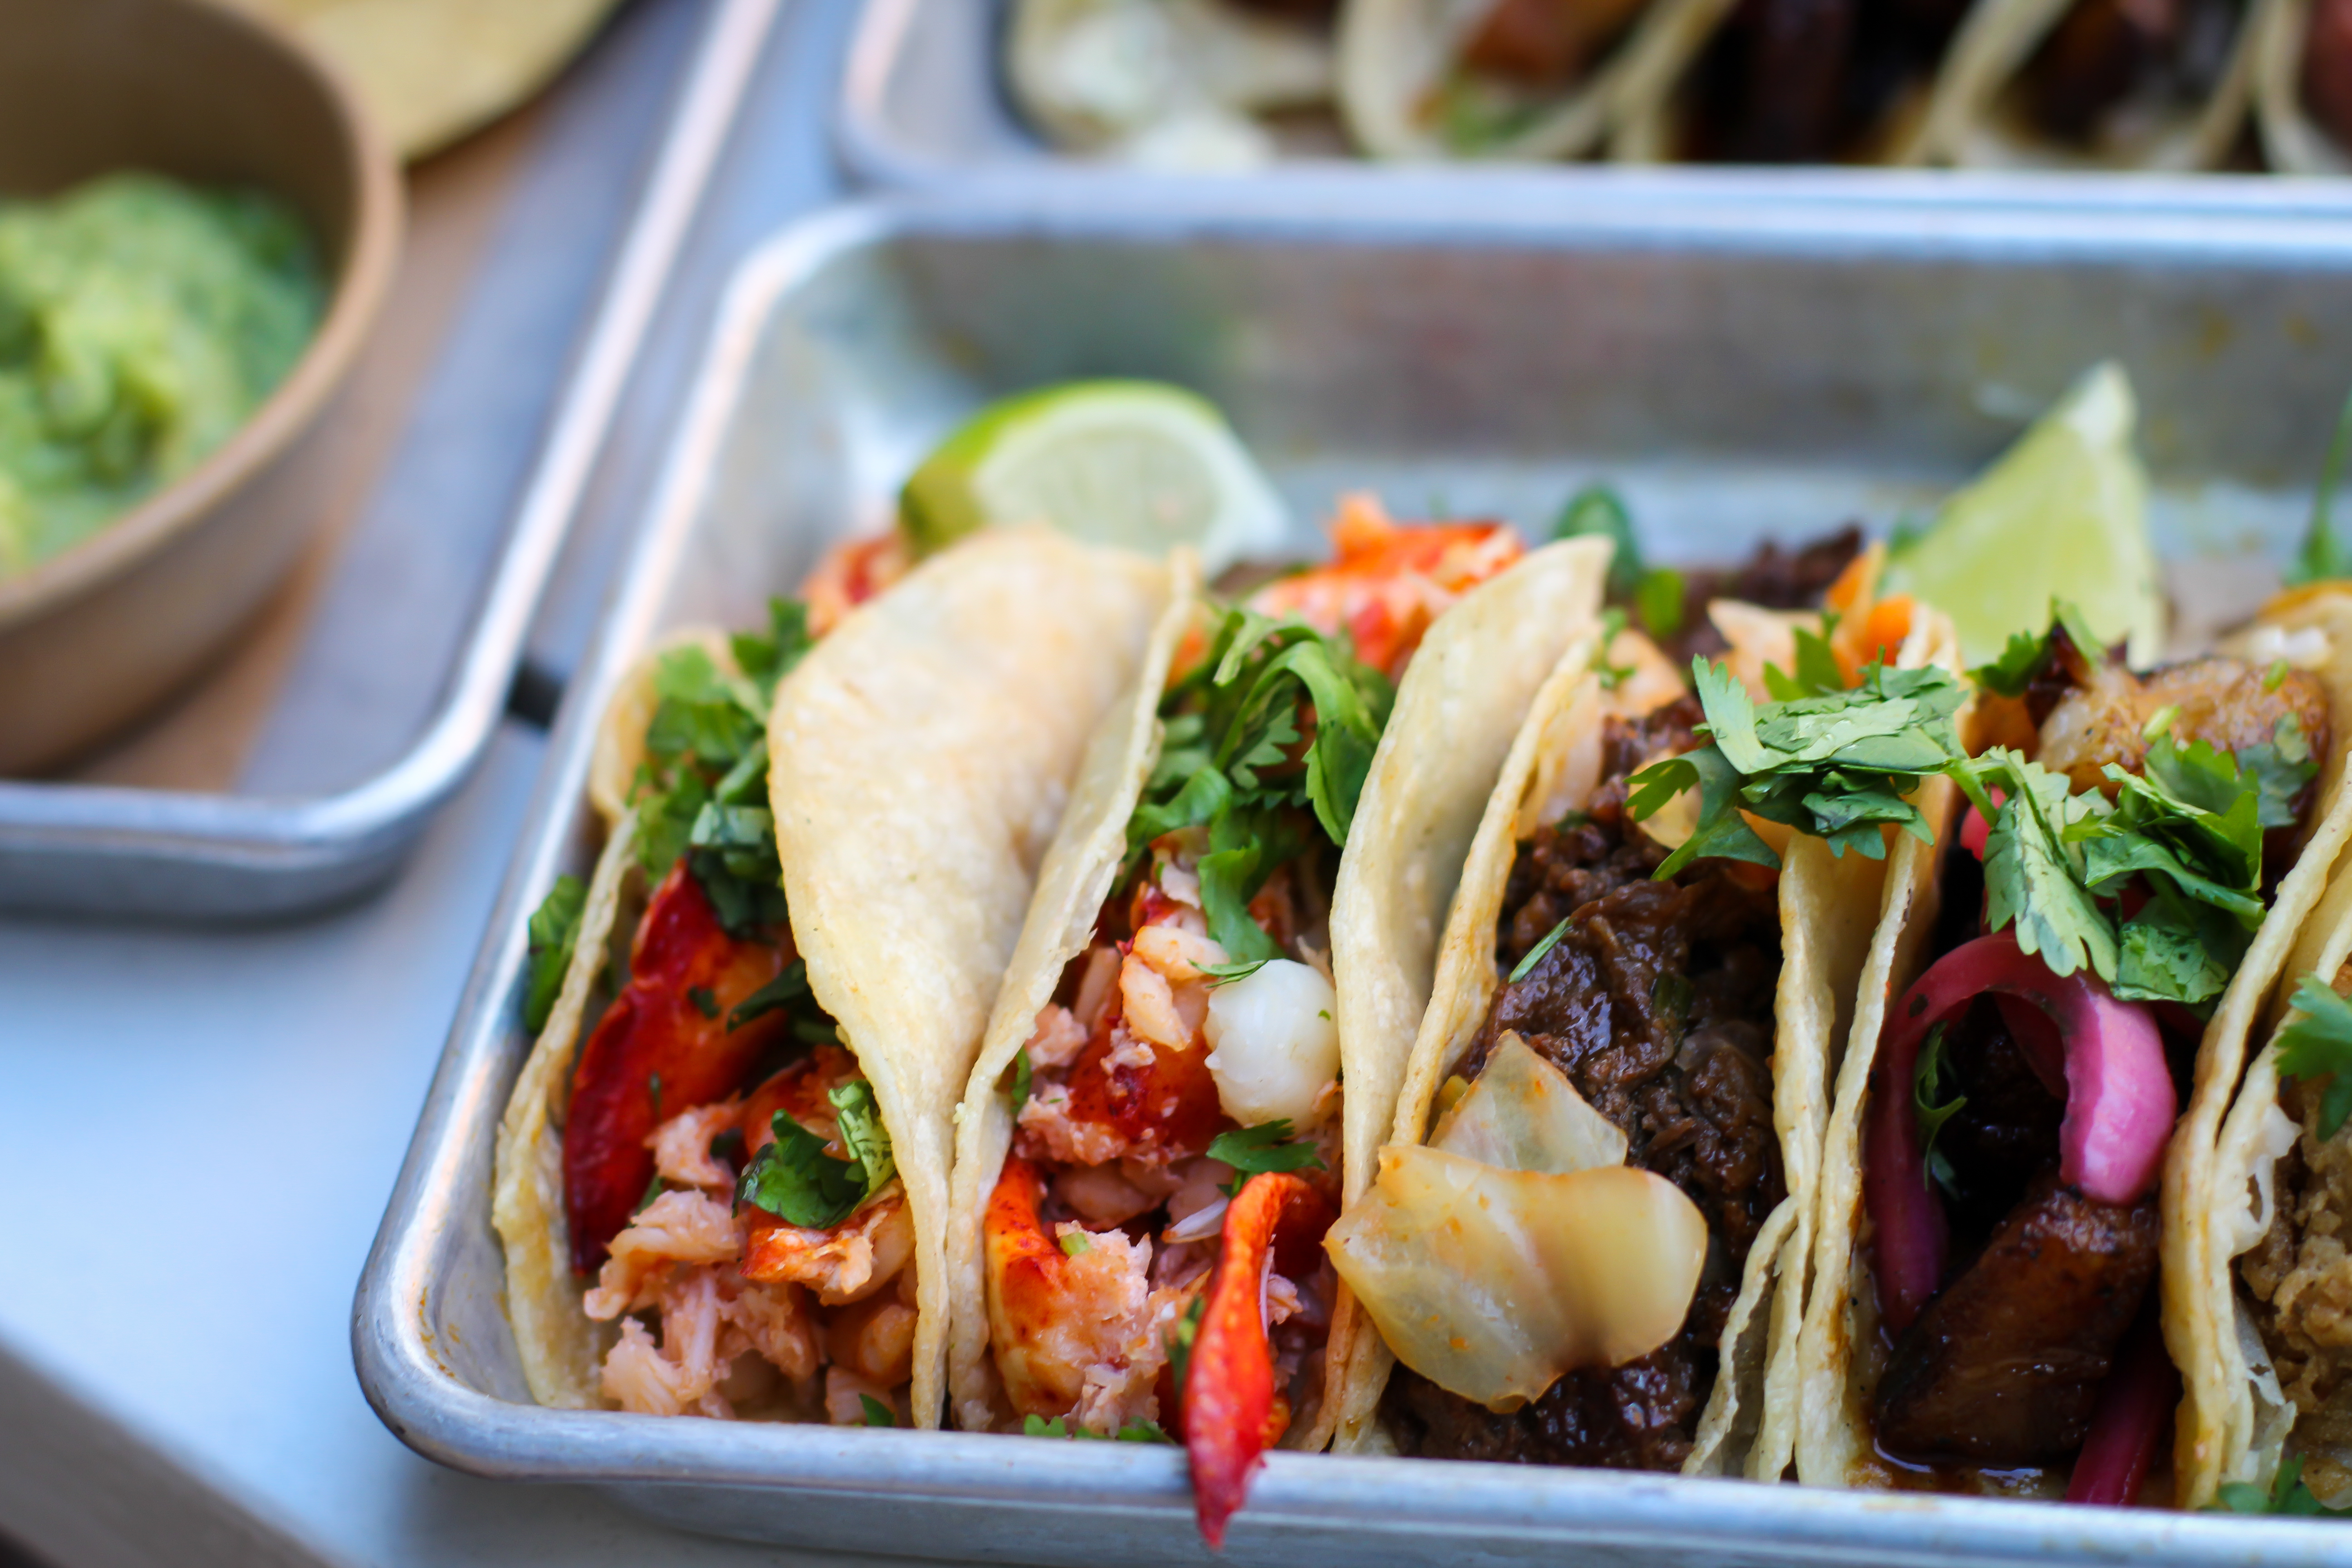 Eat Well, Explore Often - Get your Taco Fix at Bartaco - Eat